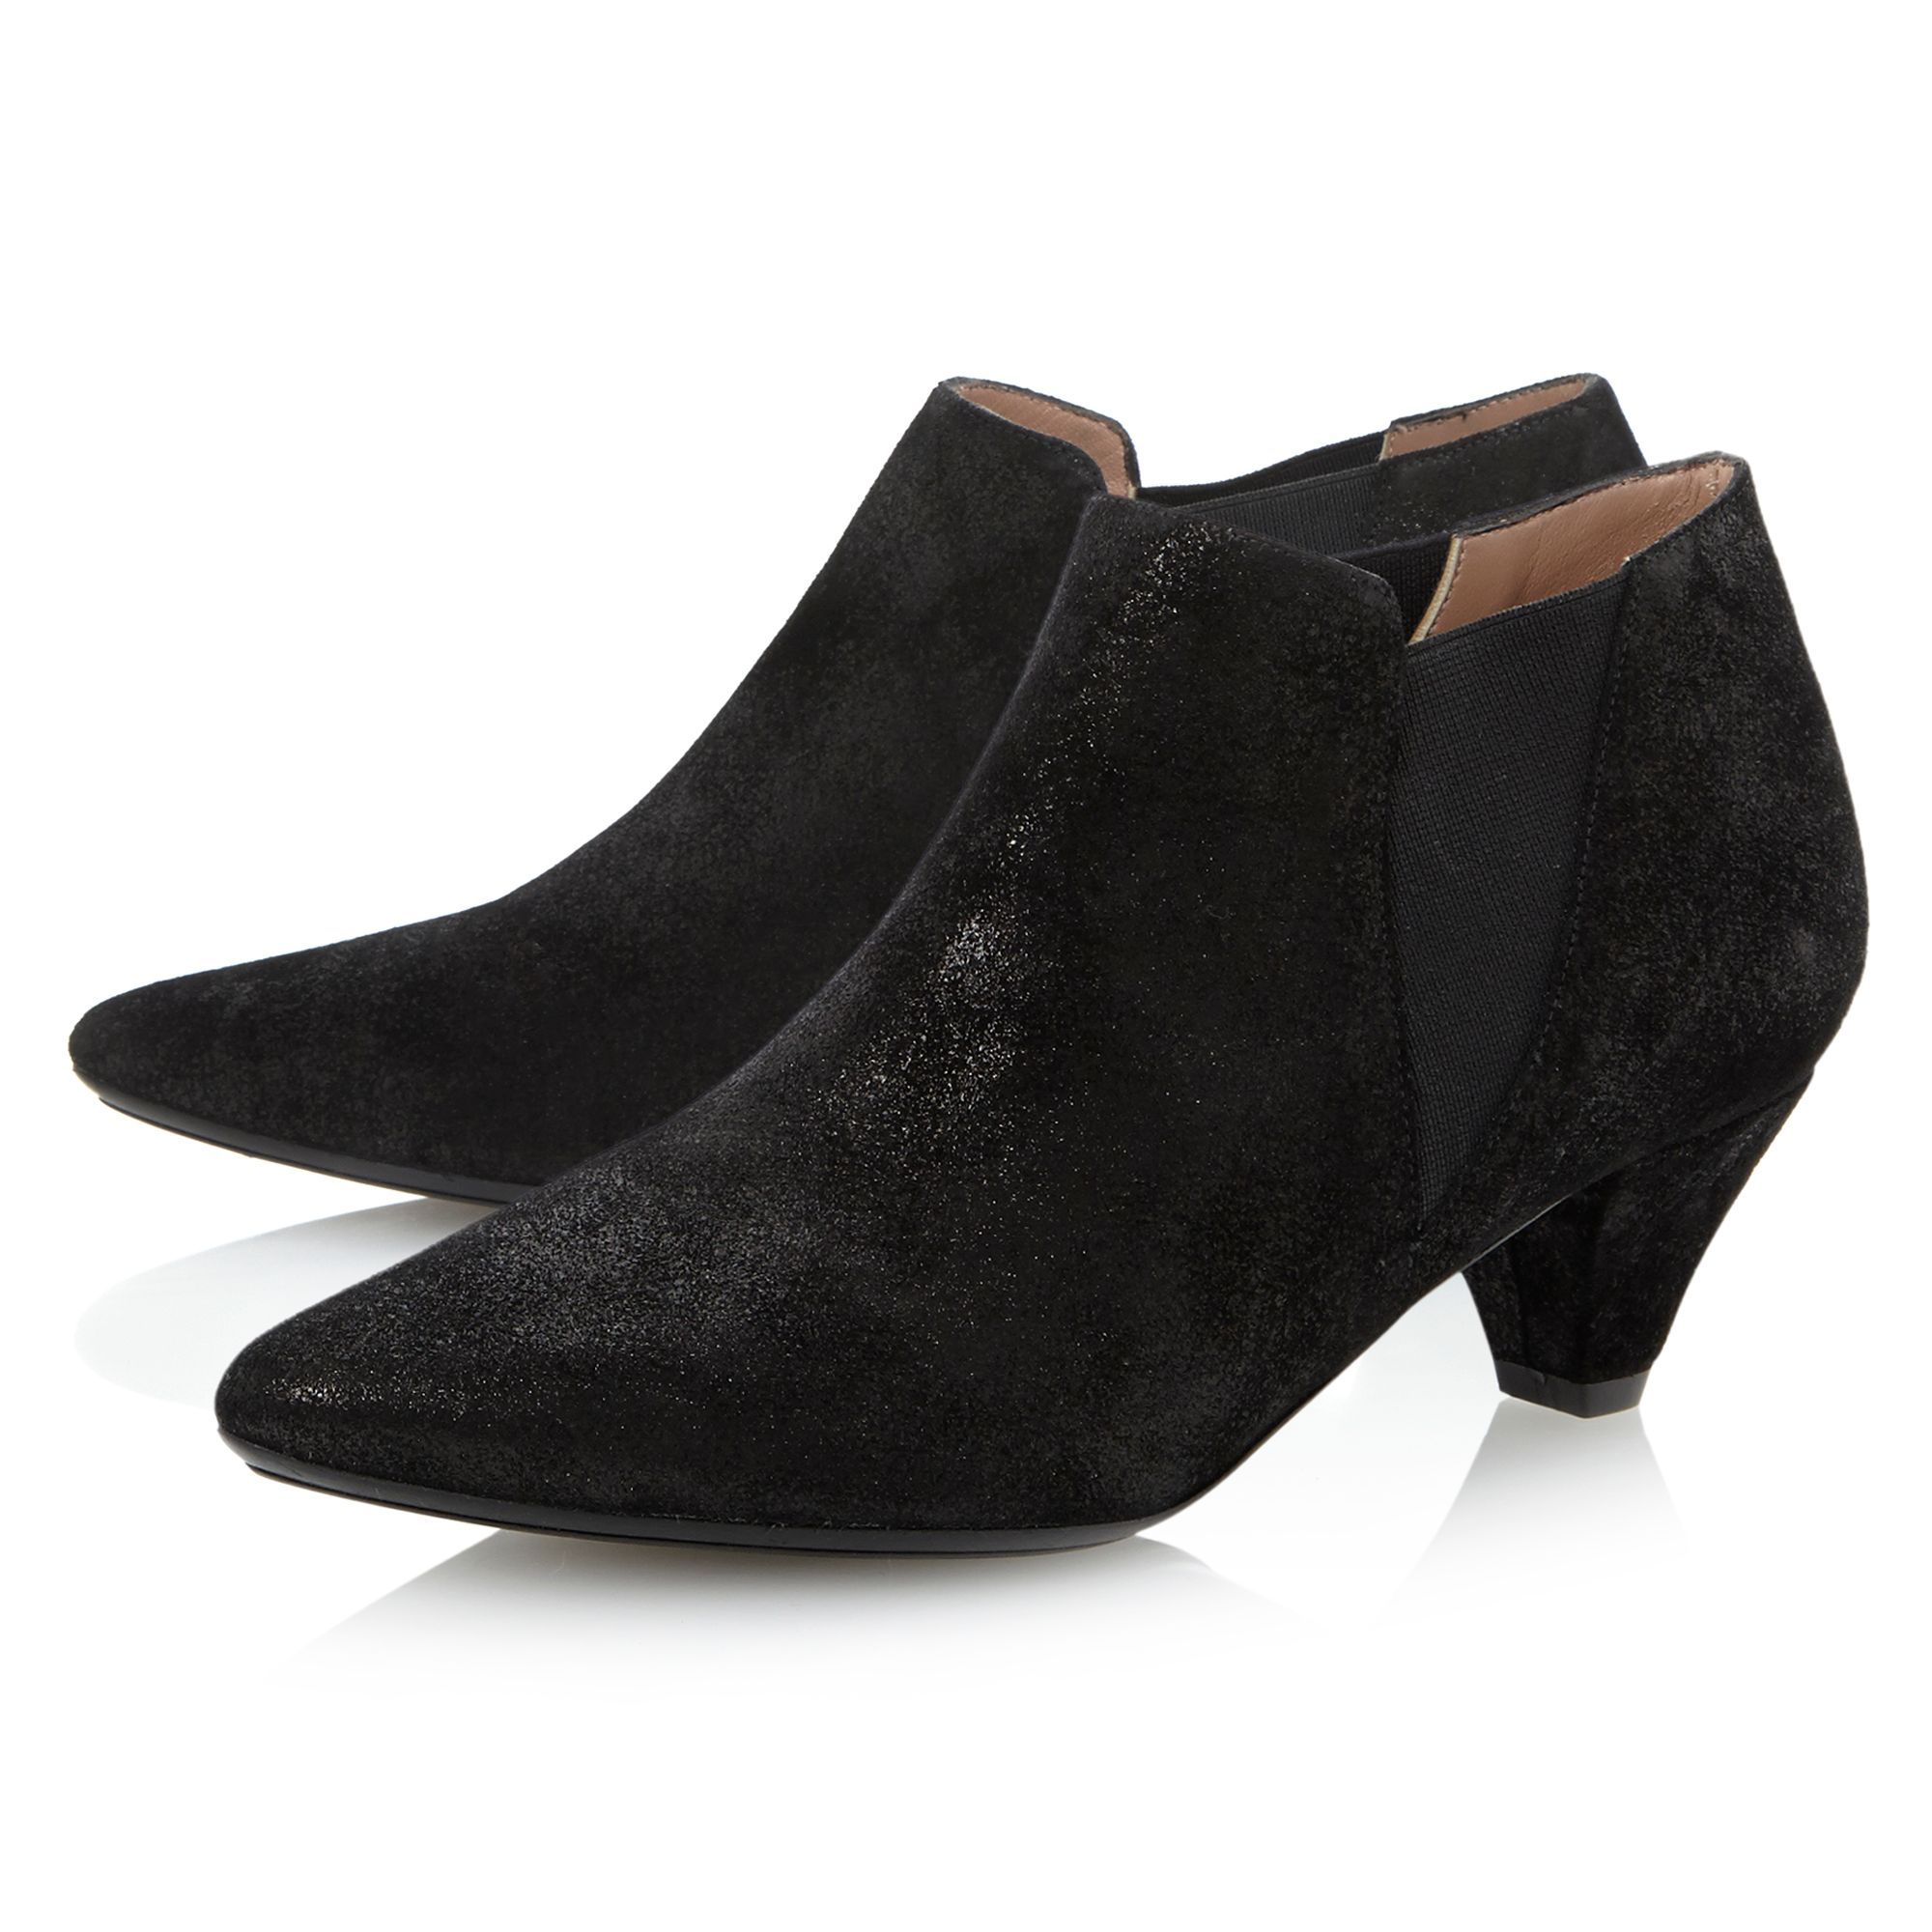 dune black saxe pointed kitten heel ankle shoe boots in